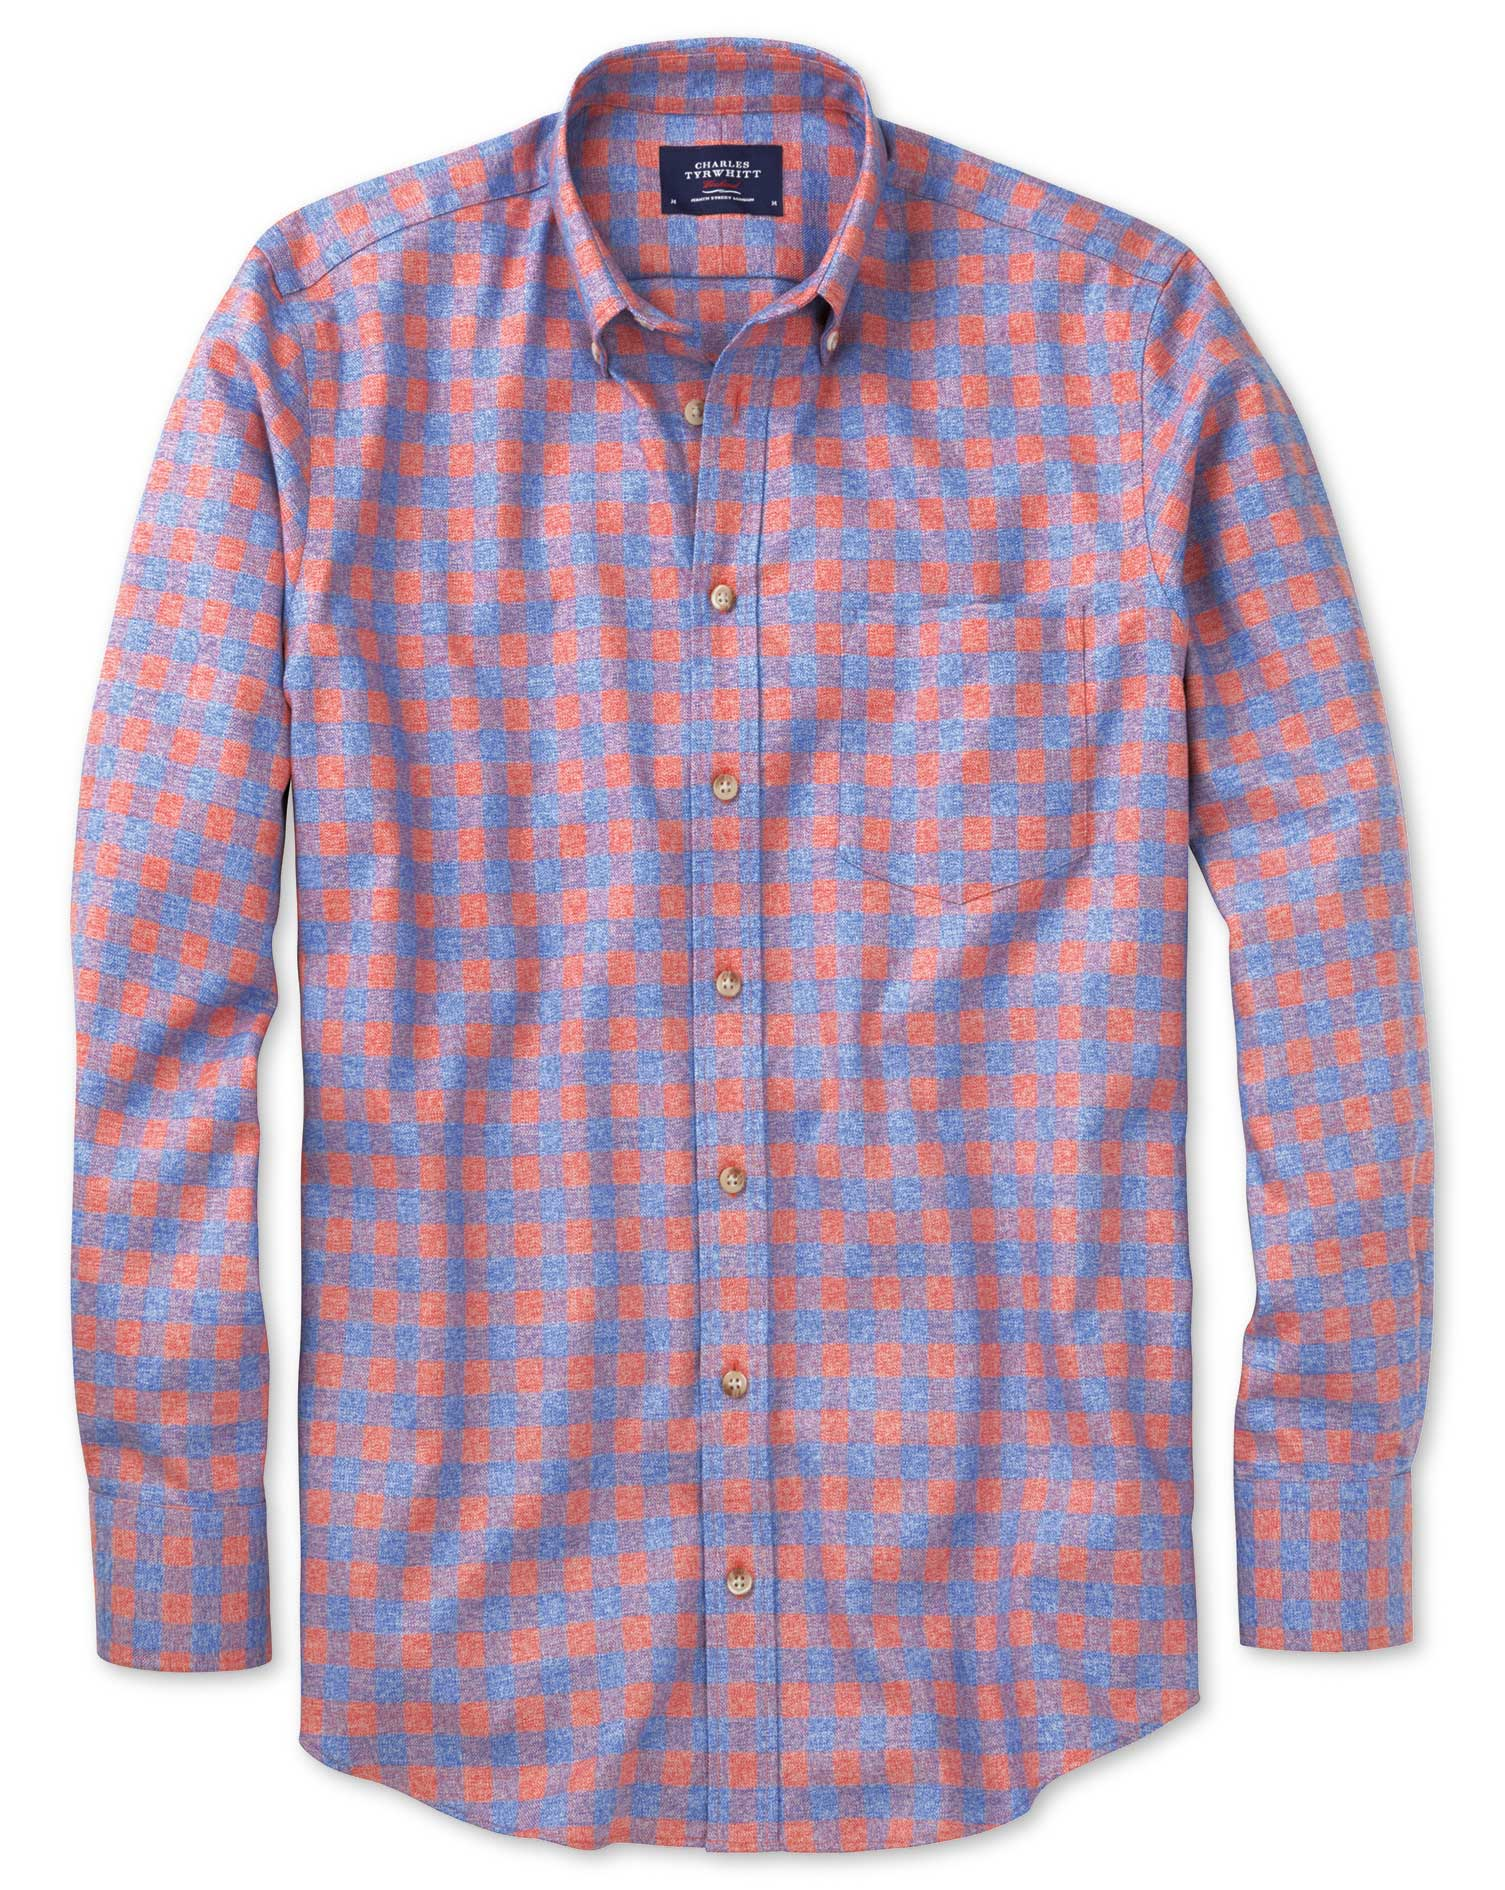 Slim Fit Non-Iron Gingham Coral and Blue Cotton Shirt Single Cuff Size Large by Charles Tyrwhitt